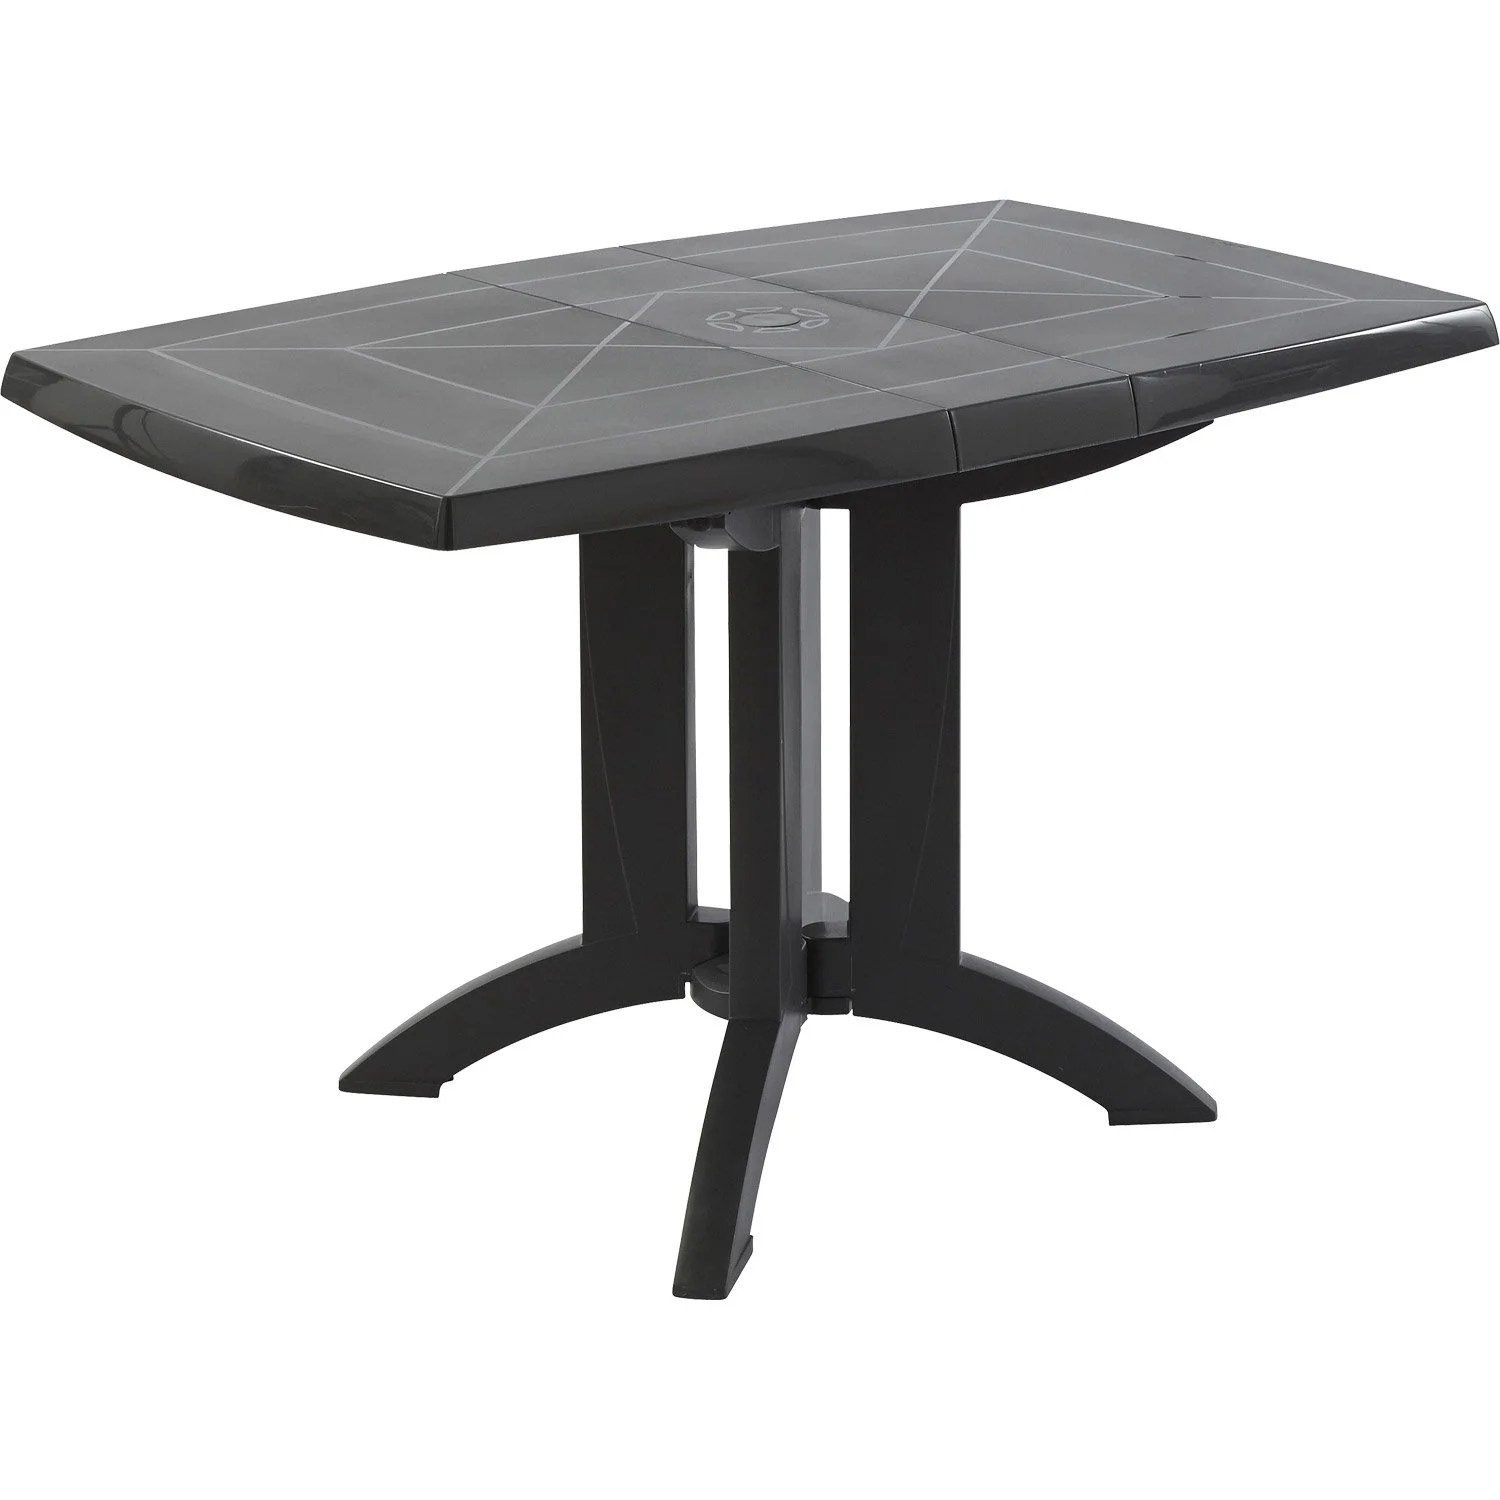 Table de jardin GROSFILLEX Vga rectangulaire anthracite 4 personnes  Leroy Merlin